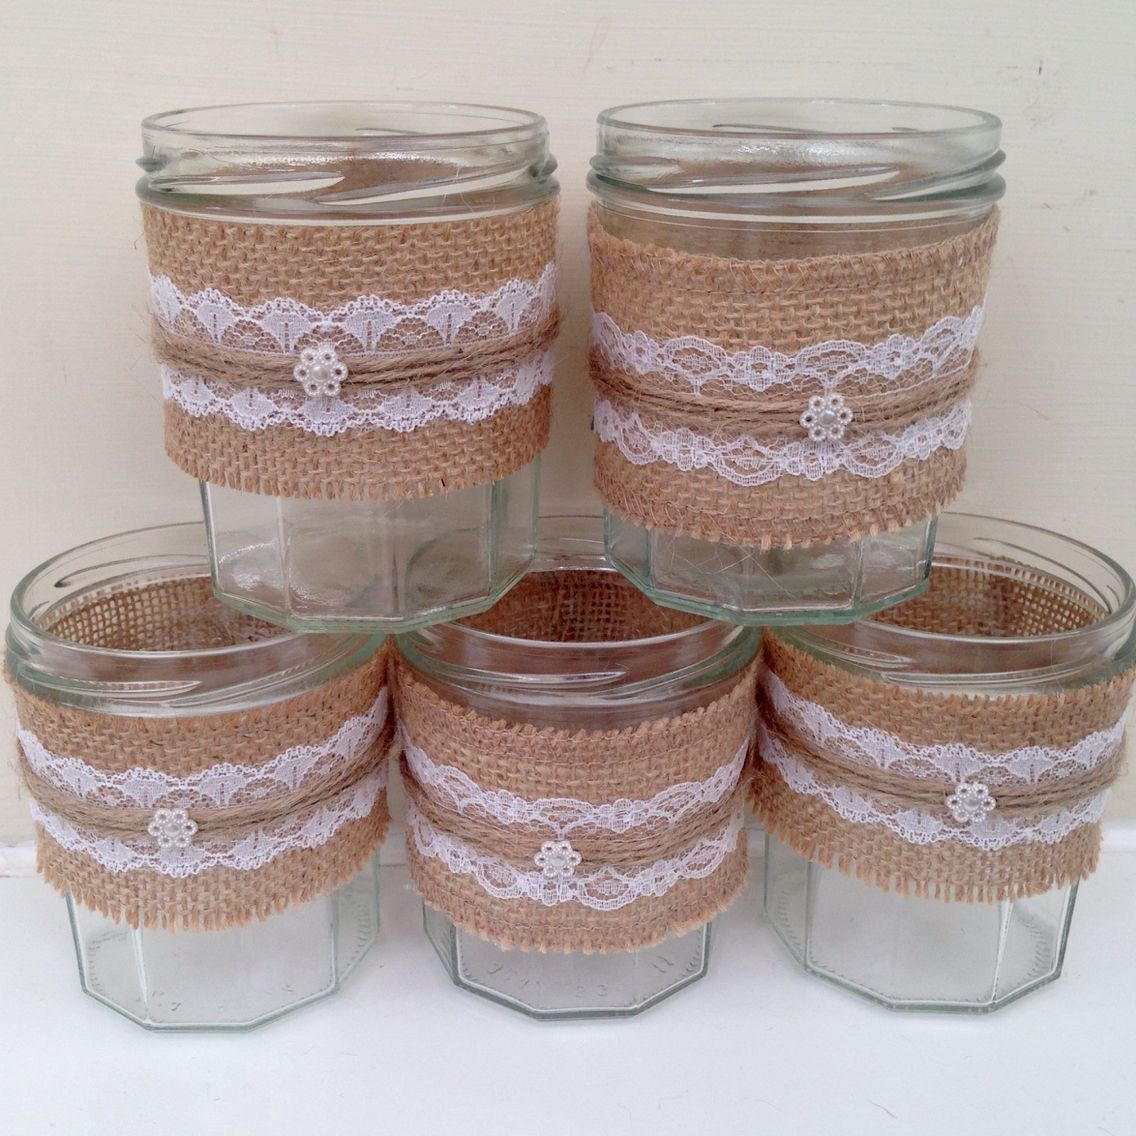 Hessian and lace jars #wedding #rustic